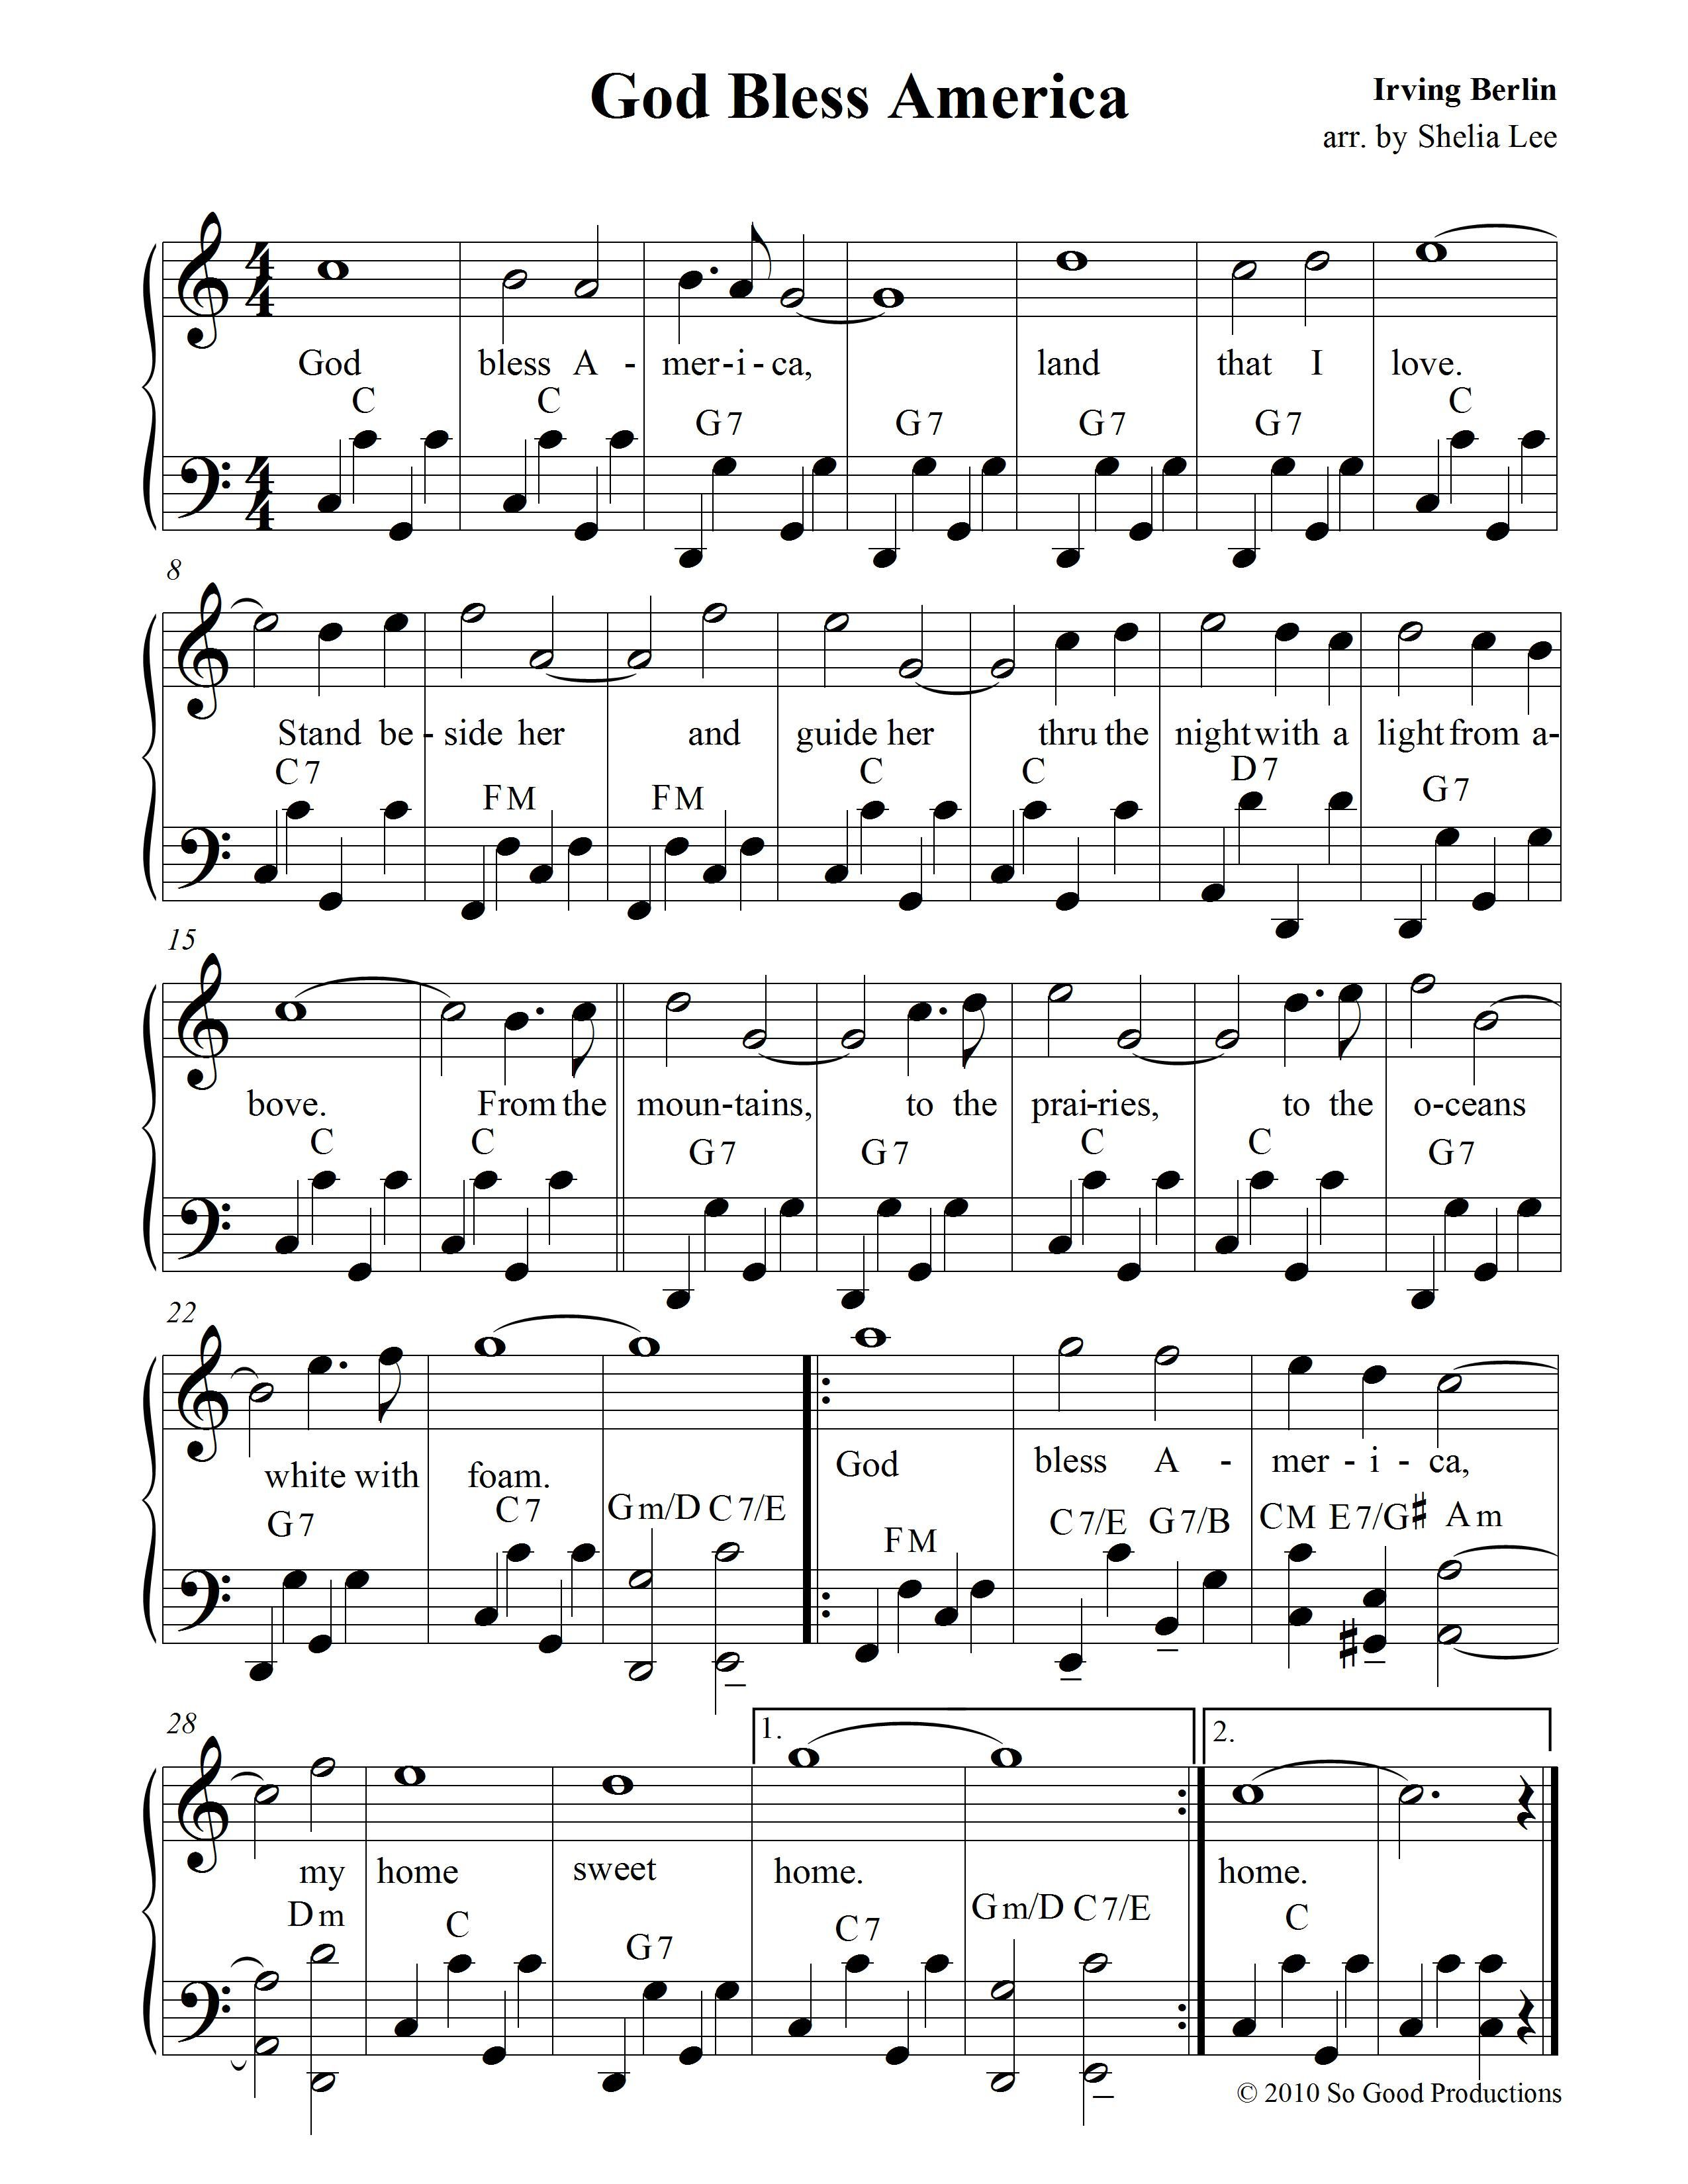 God Bless America Sheet Music Free